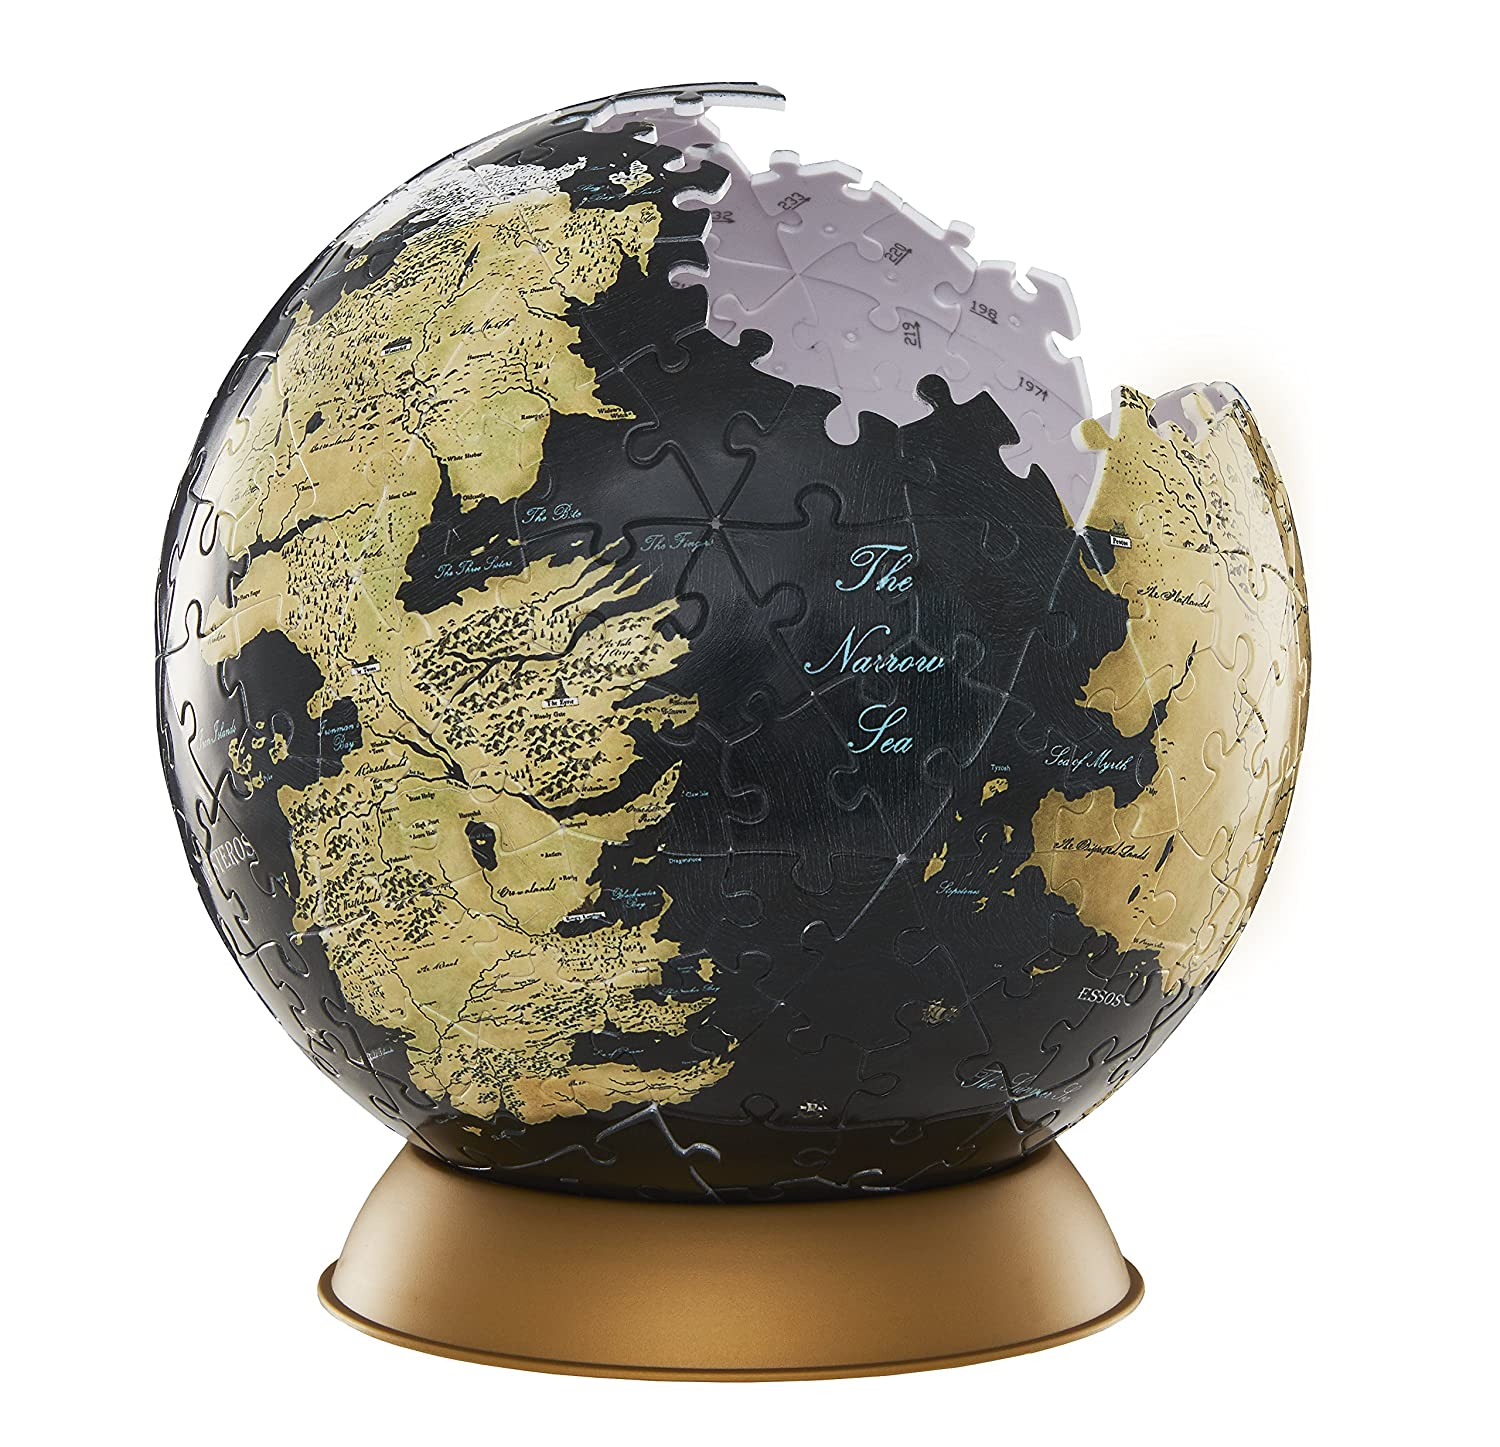 Game of Thrones Globe 6' Cityscape Inc 4d Game of Thrones Globe 6 4D CITYSCAPE INC 30002 Puzzles